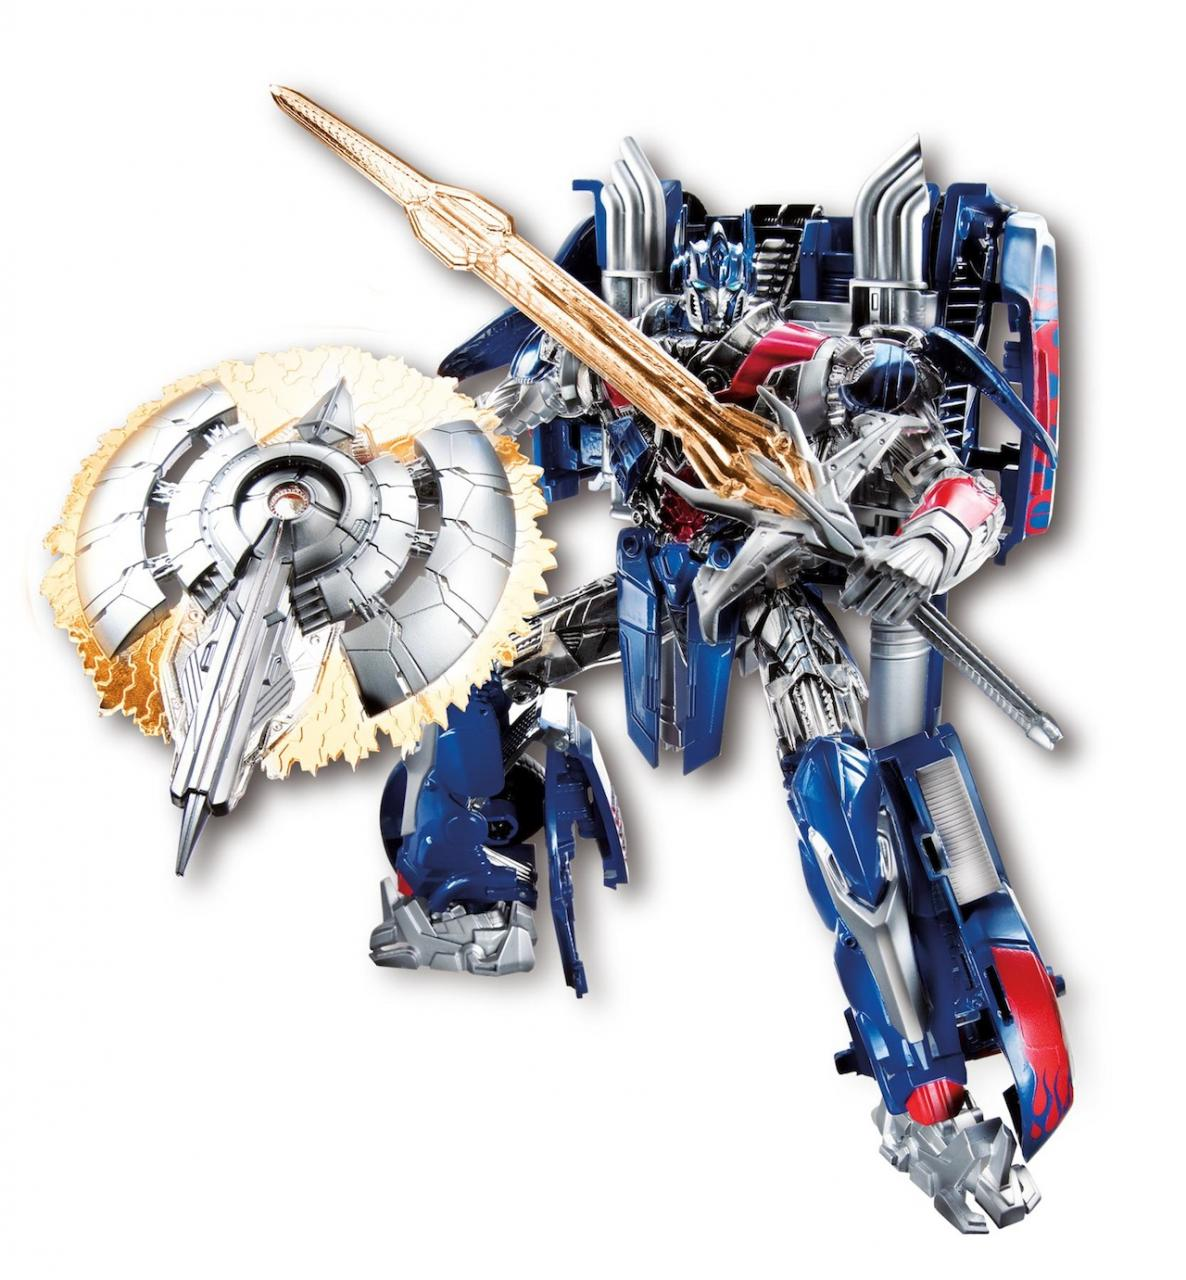 hr_Transformers-_Age_of_Extinction_Toy_Line_3